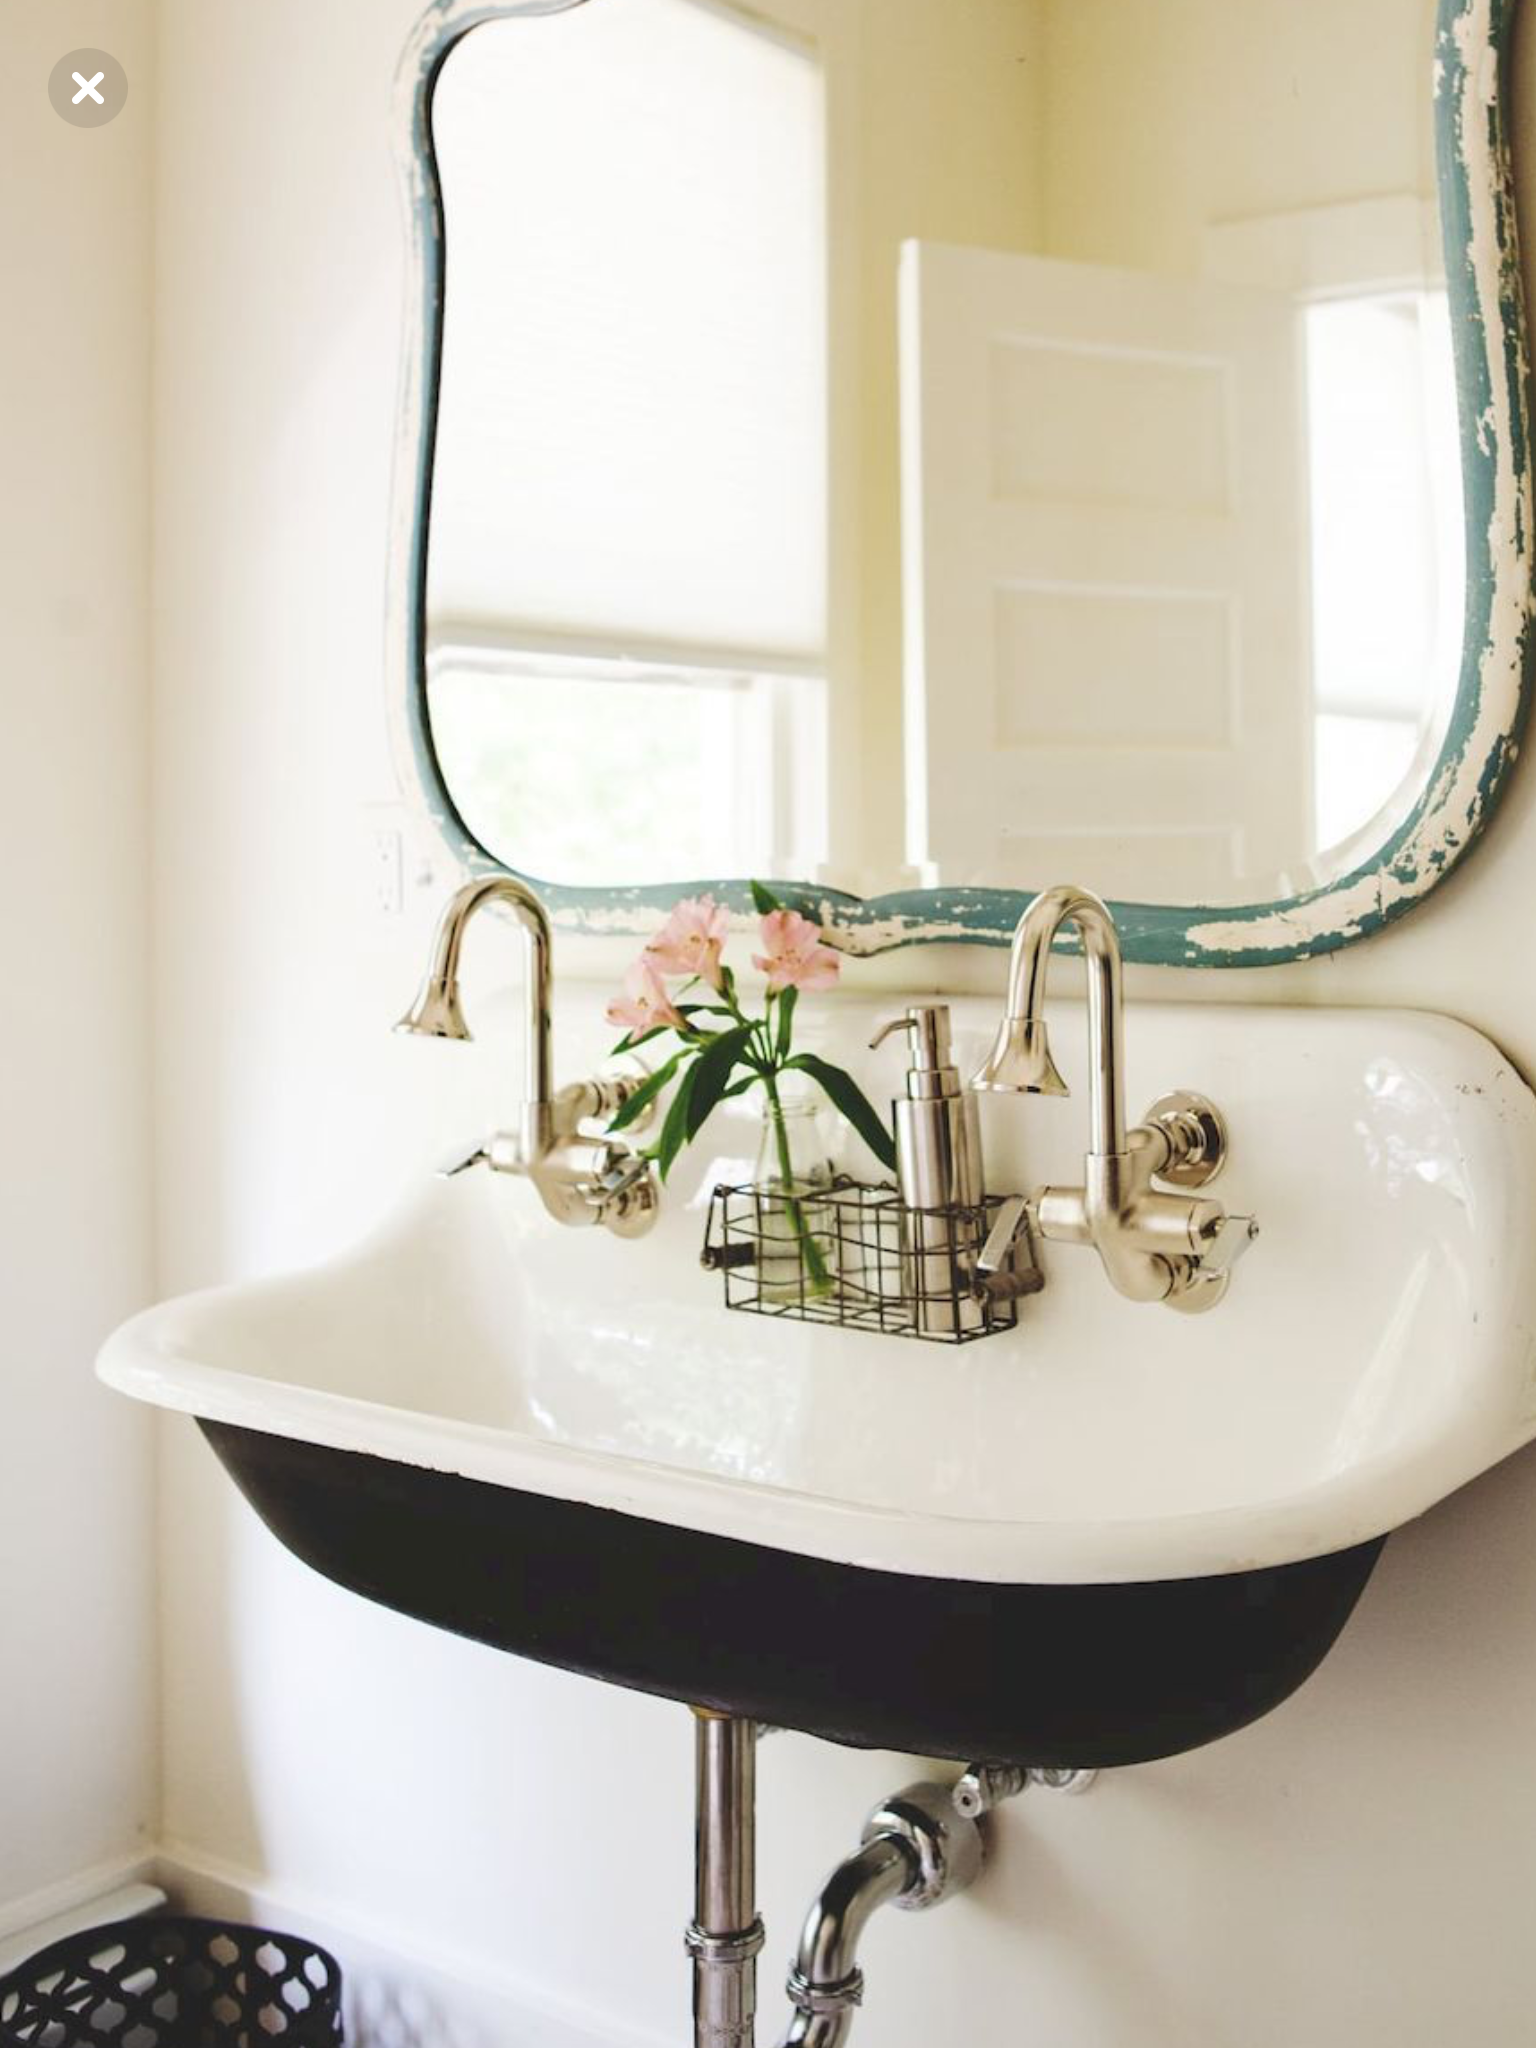 Bathroom Renovations Vermont: Pin By Grace Smith On Vermont Bathroom In 2019